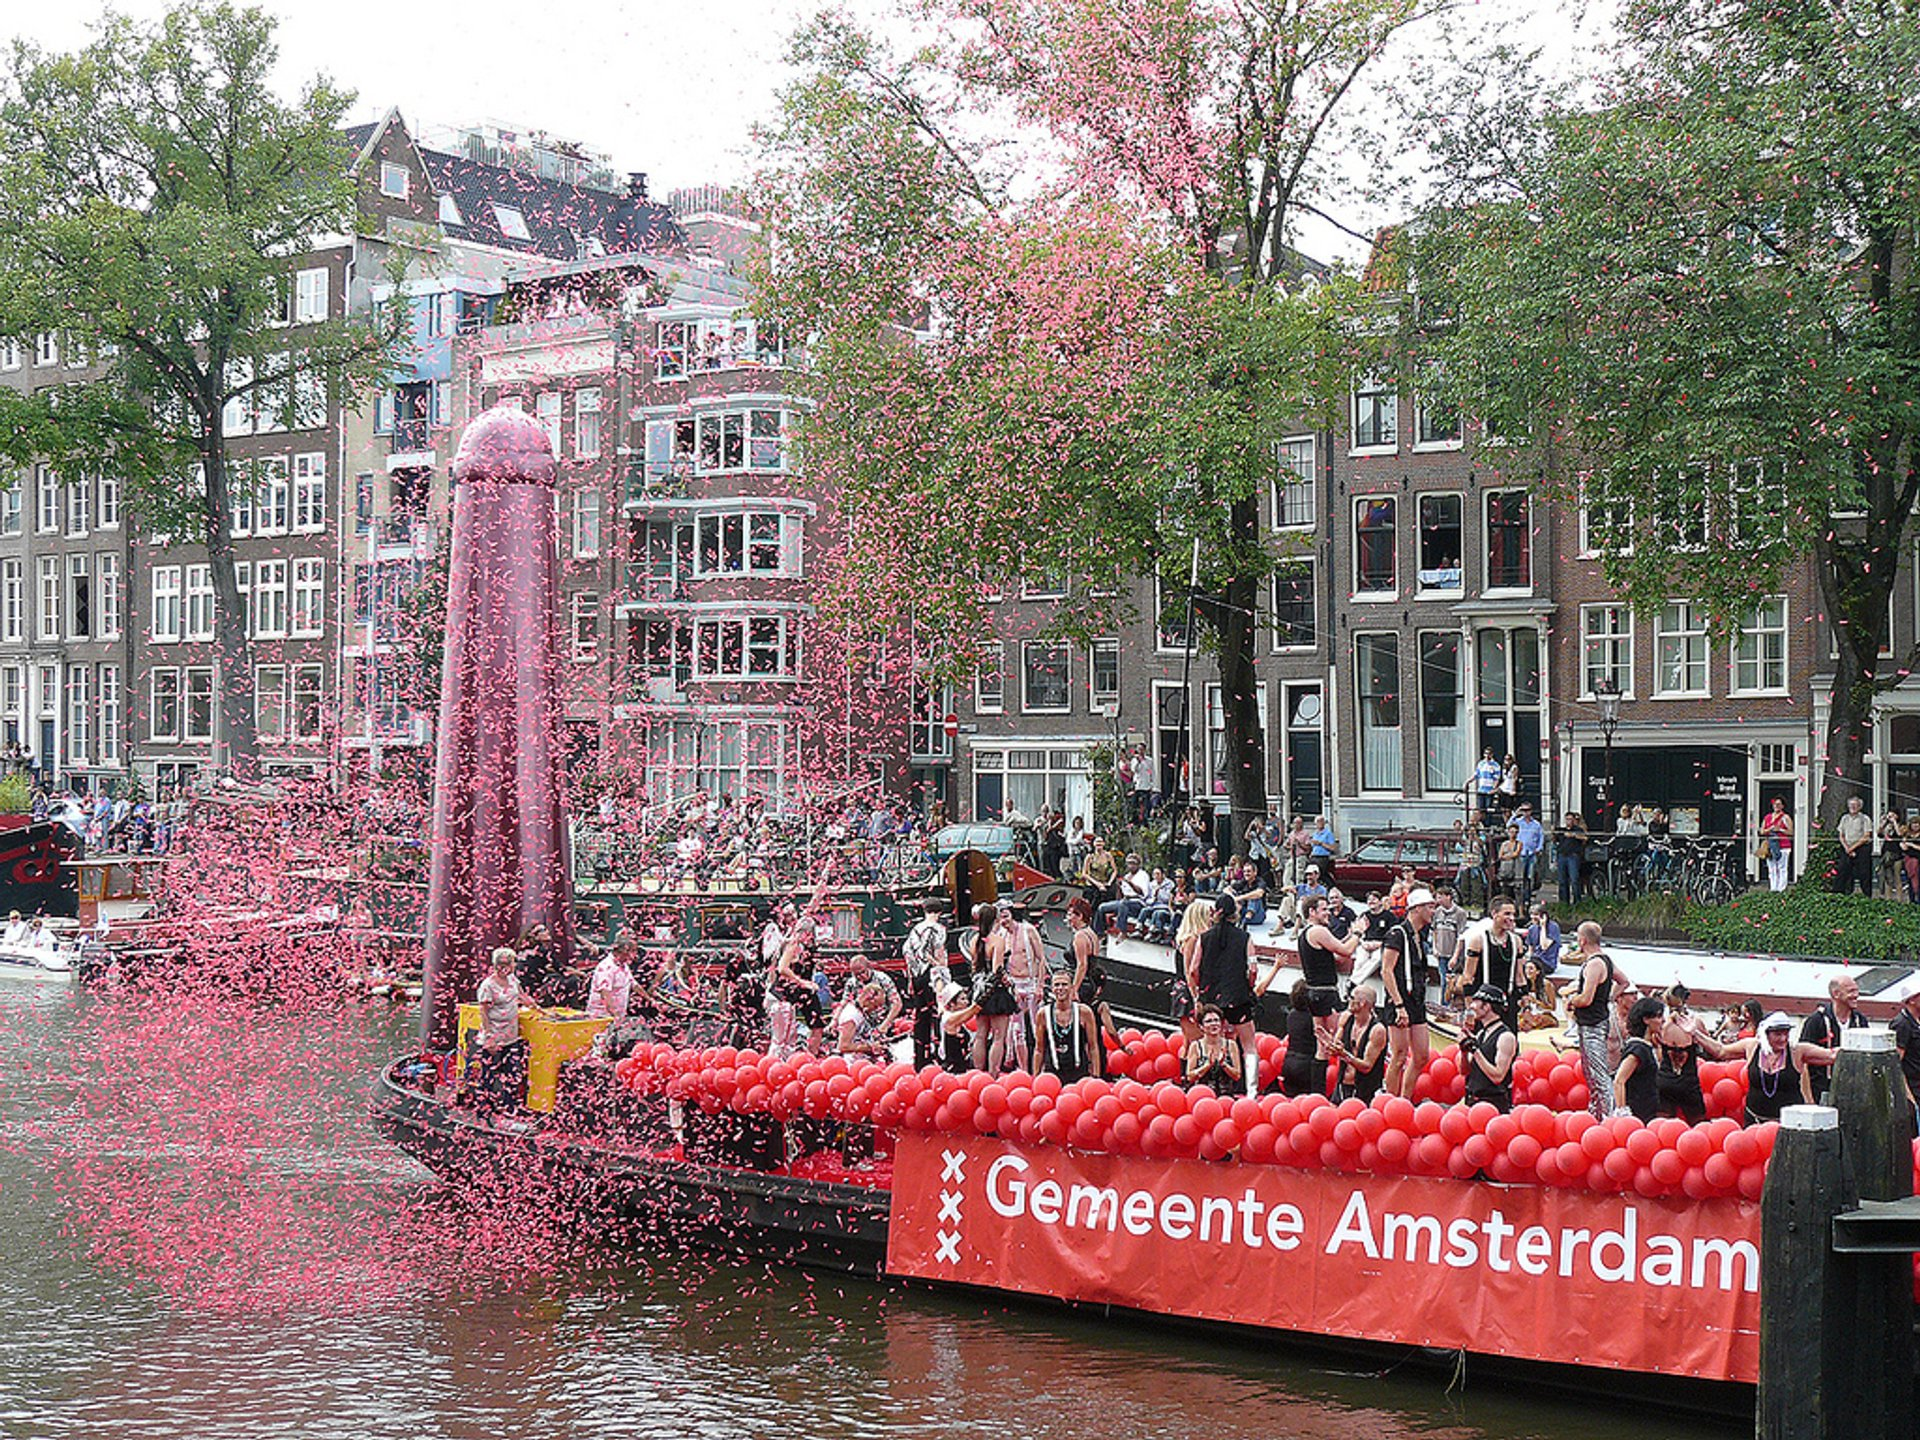 Gay Pride Canal Parade in The Netherlands 2020 - Best Time